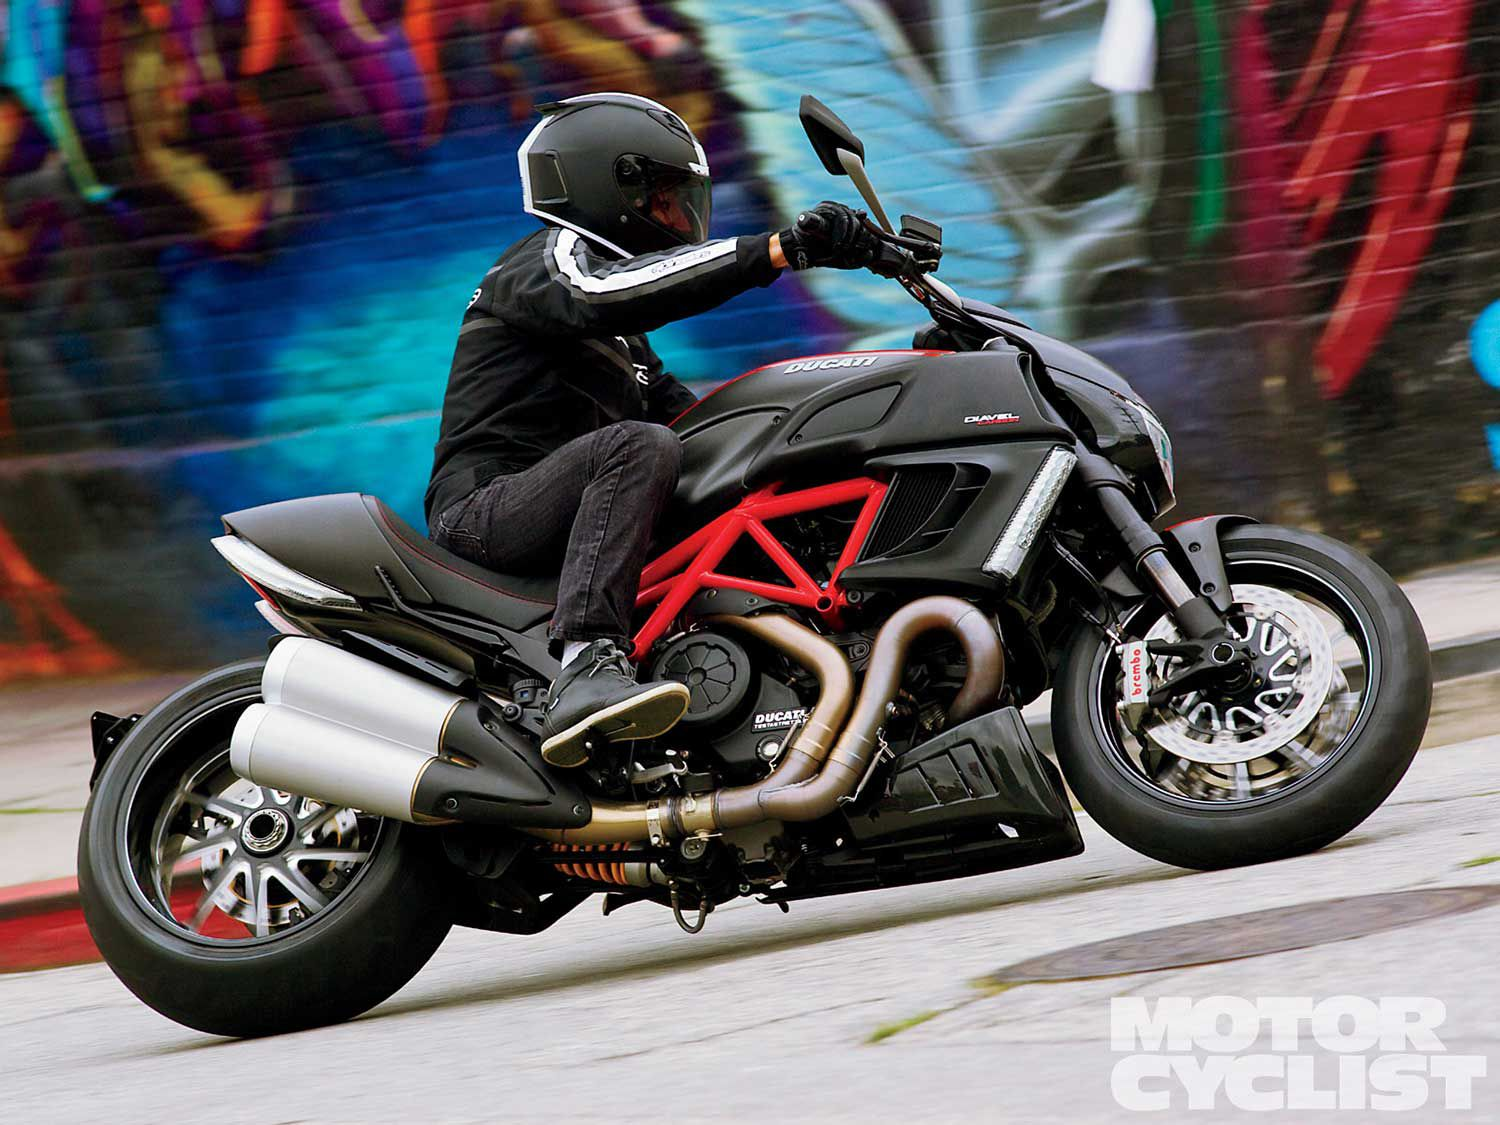 Our favorite cruisers aren't afraid of corners, like the butch Ducati Diavel.